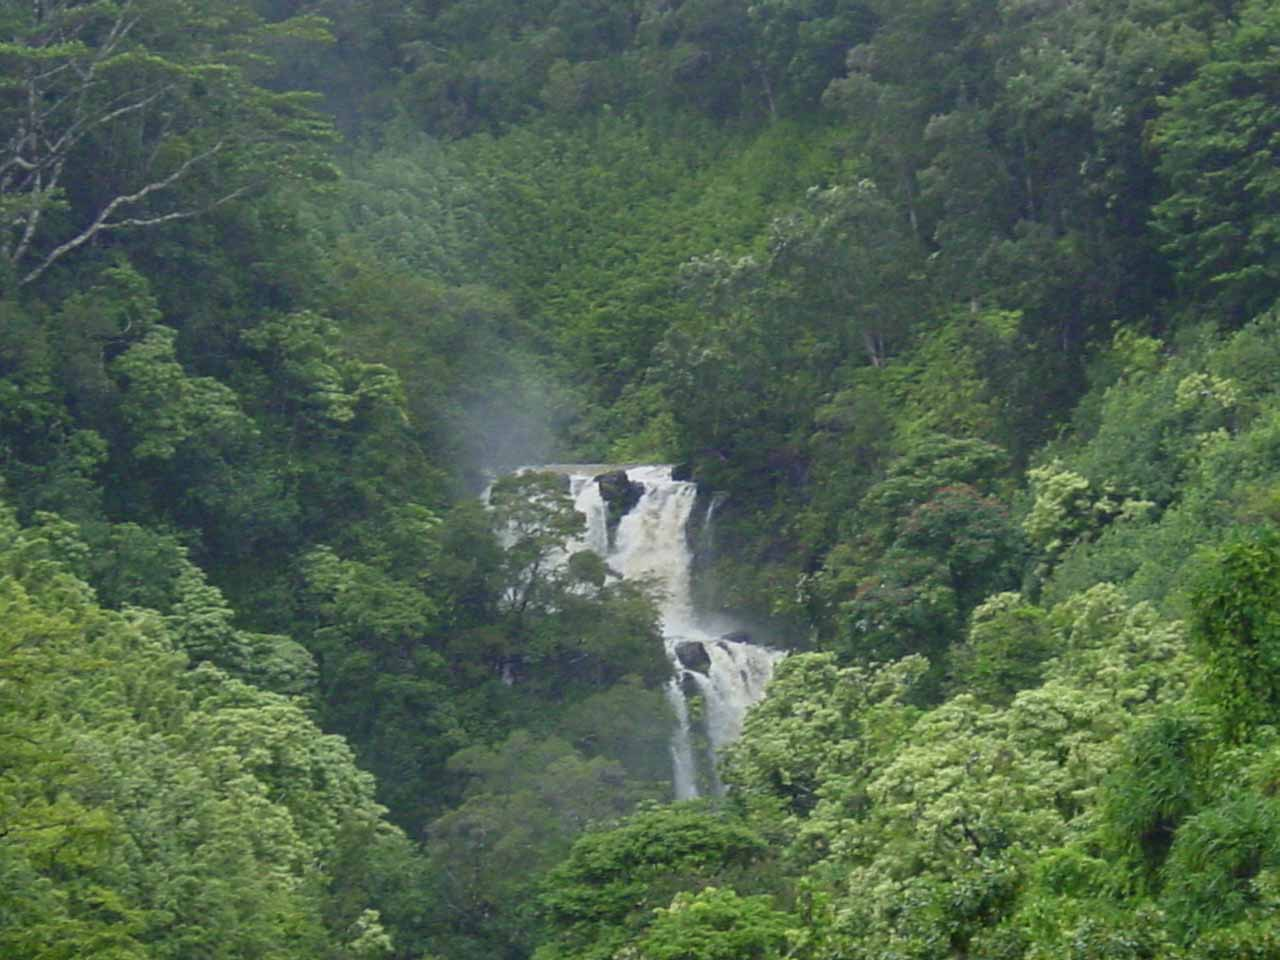 The waterfall on Waikamoi Stream